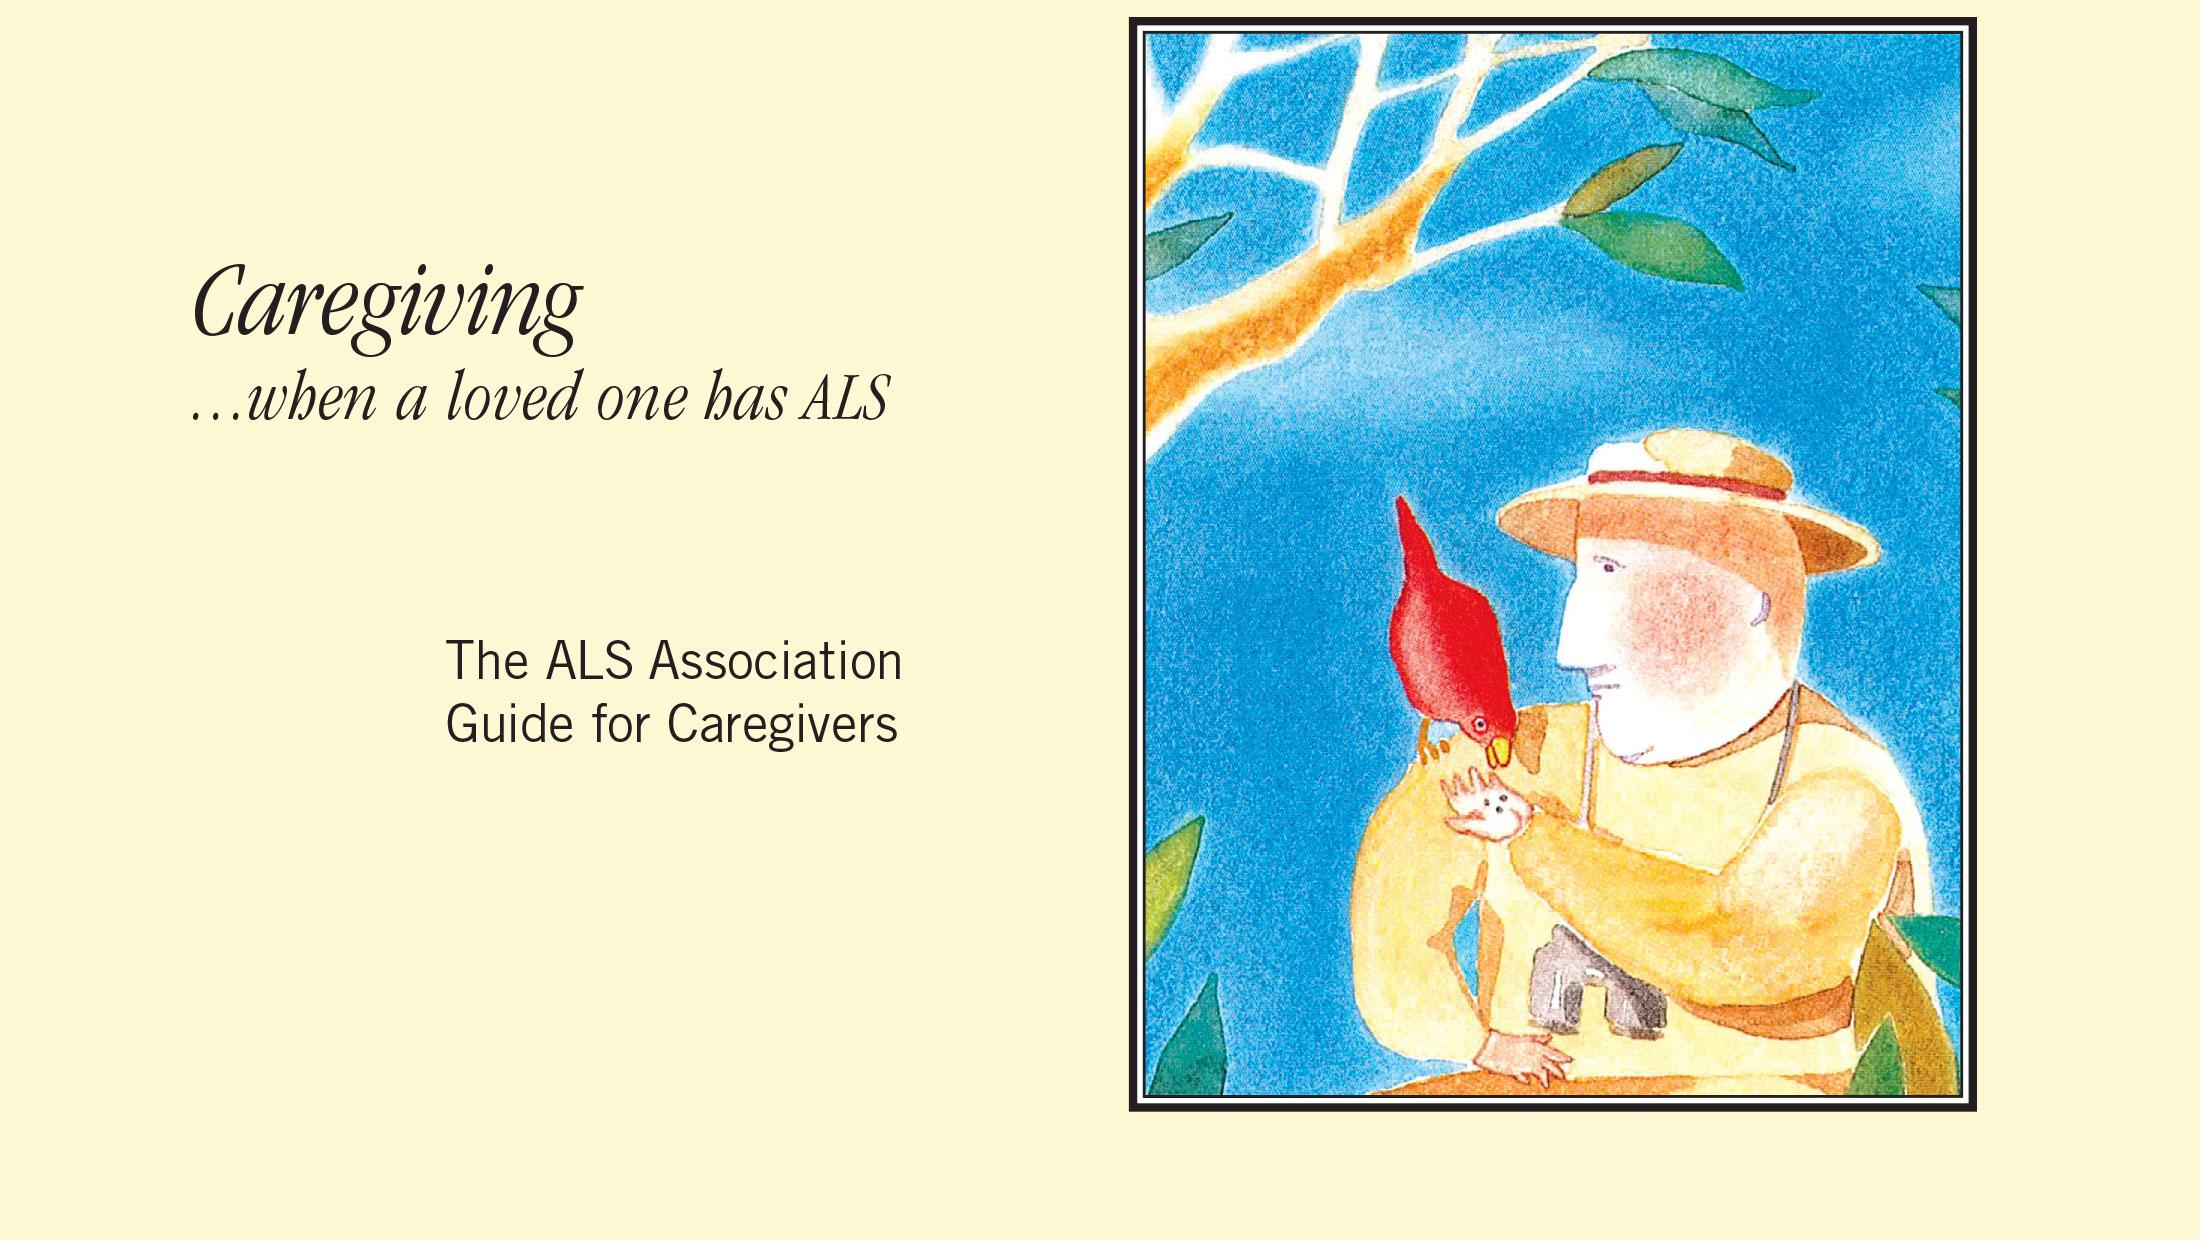 hero-image-Caregiving-When-a-loved-one-has-ALS